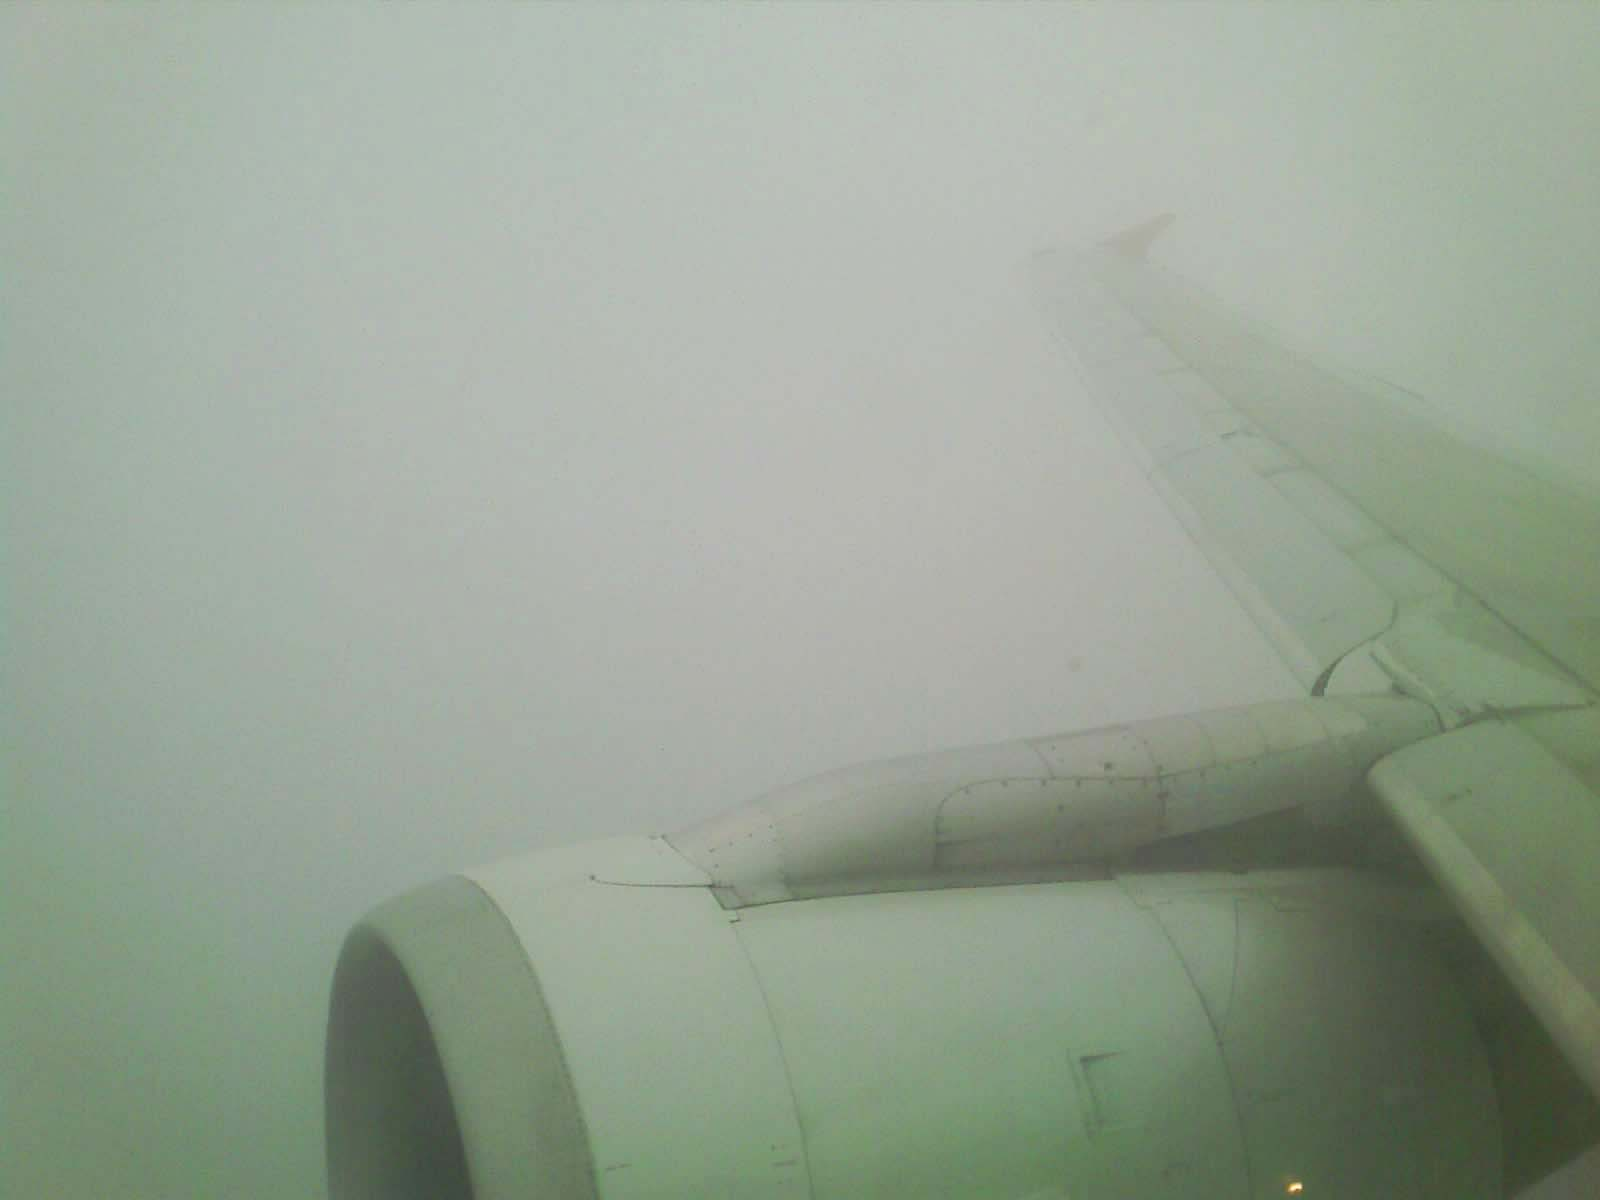 Looking out at the wing of an Northwest Airlines Airbus A320 while in the clouds